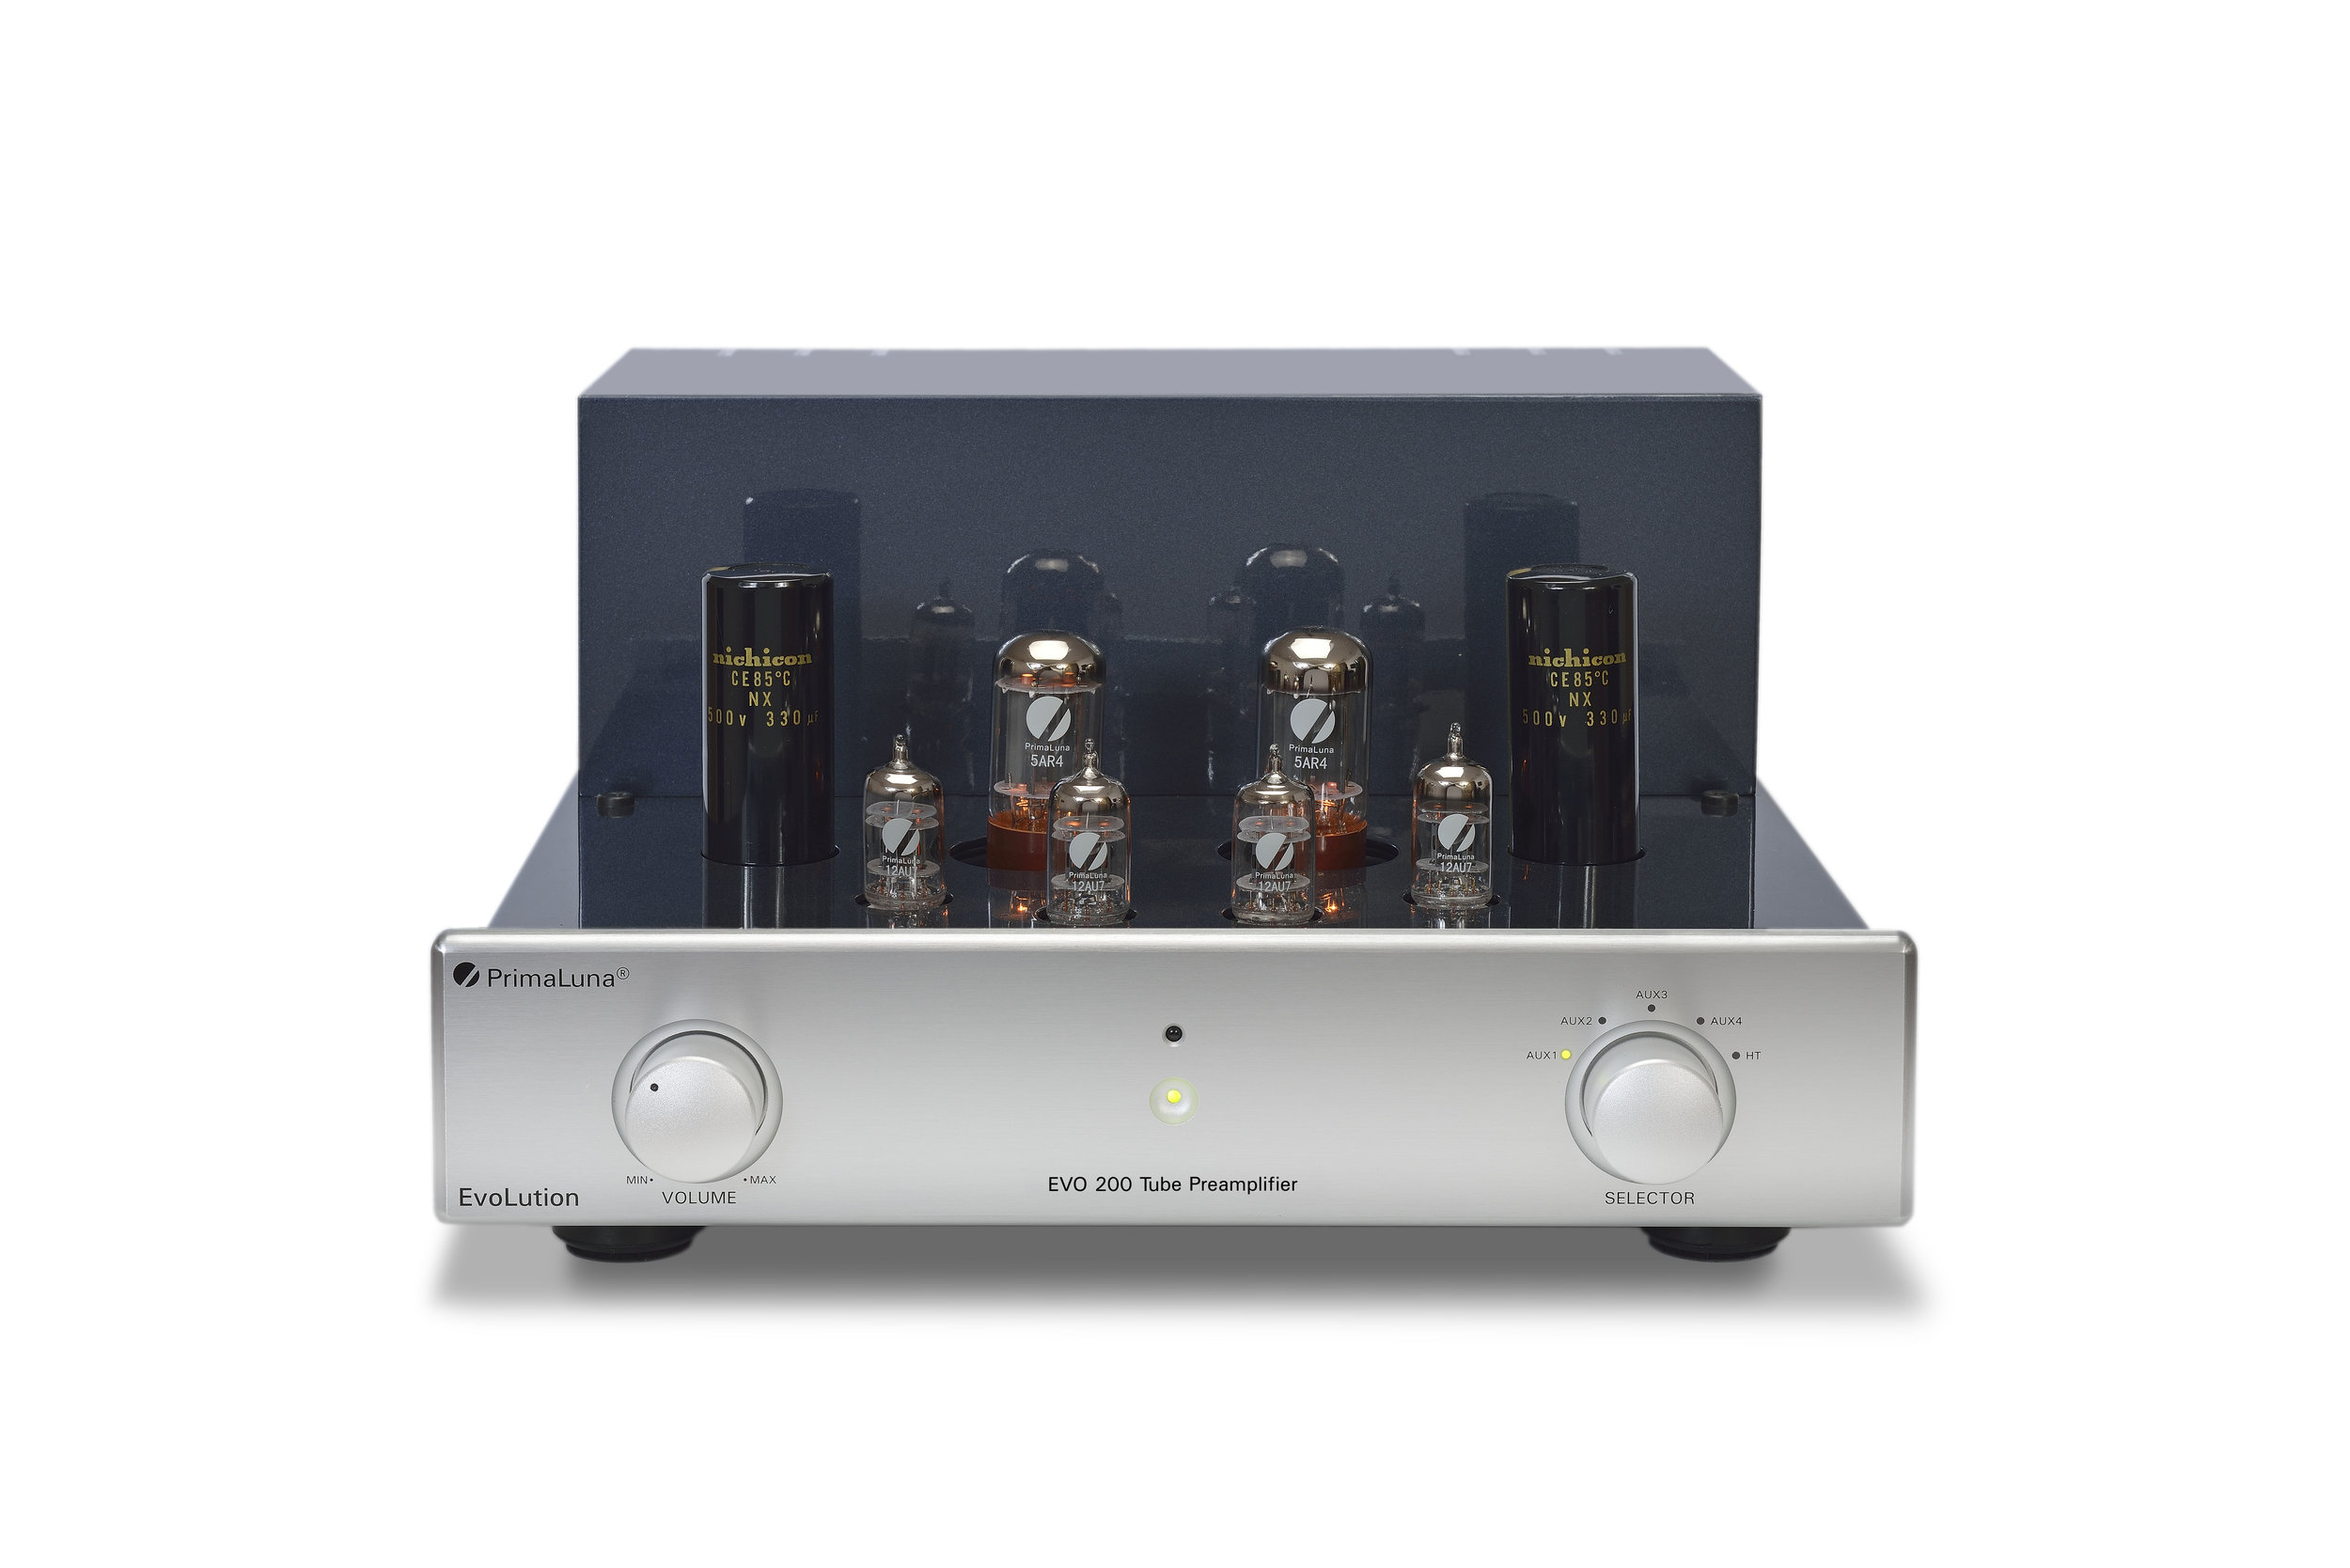 082b - PrimaLuna Evo 200 Tube Preamplifier - silver - front - without cage - white background.jpg